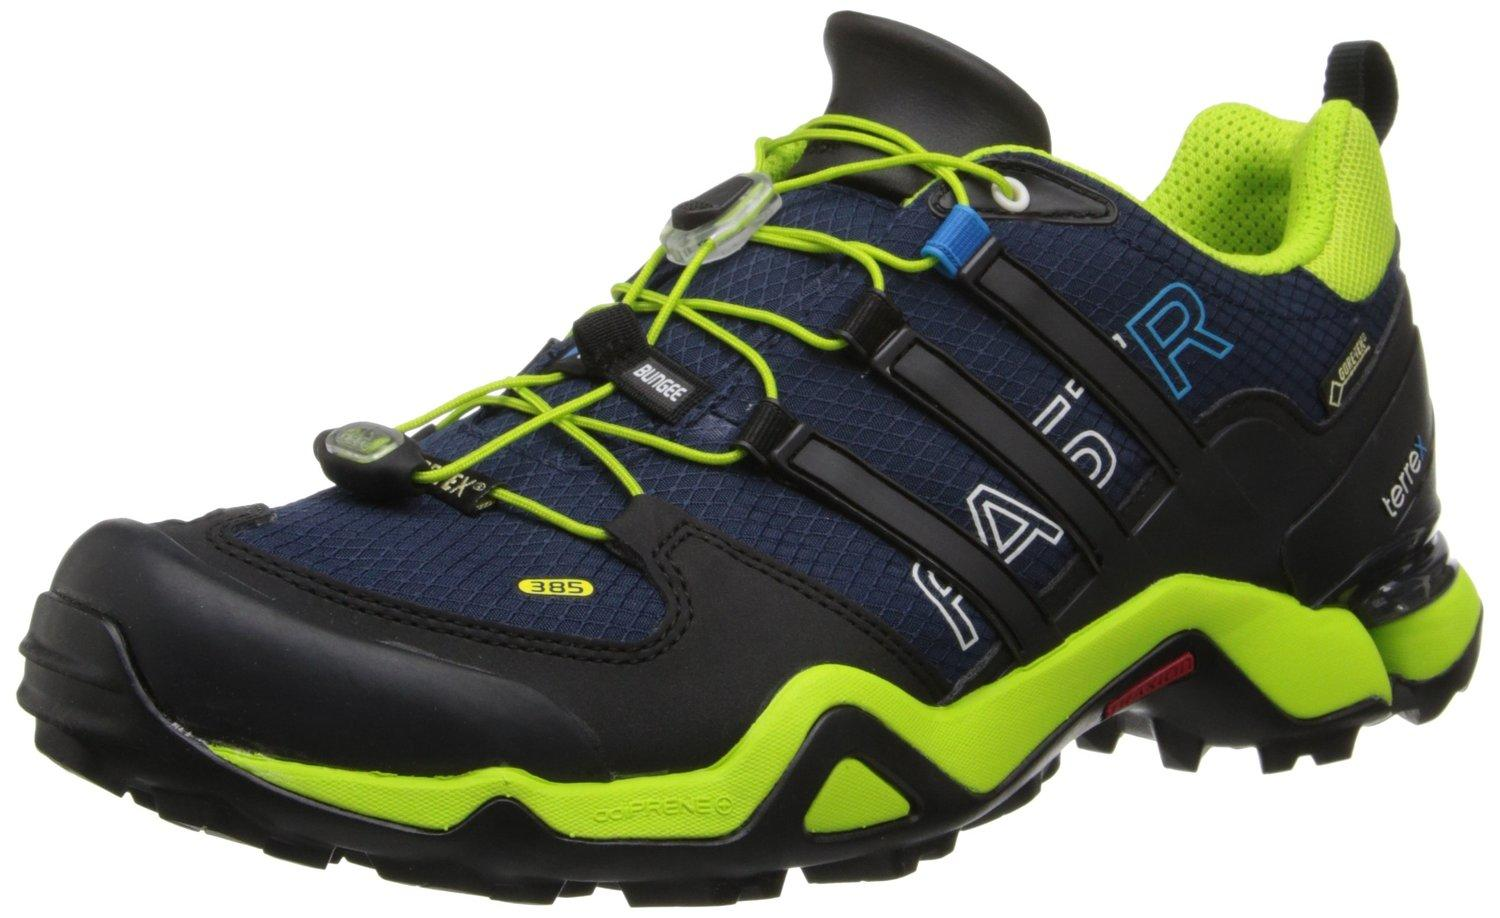 The Adidas Terrex Fast R GTX is a shoe designed for use on trails and mountain paths.